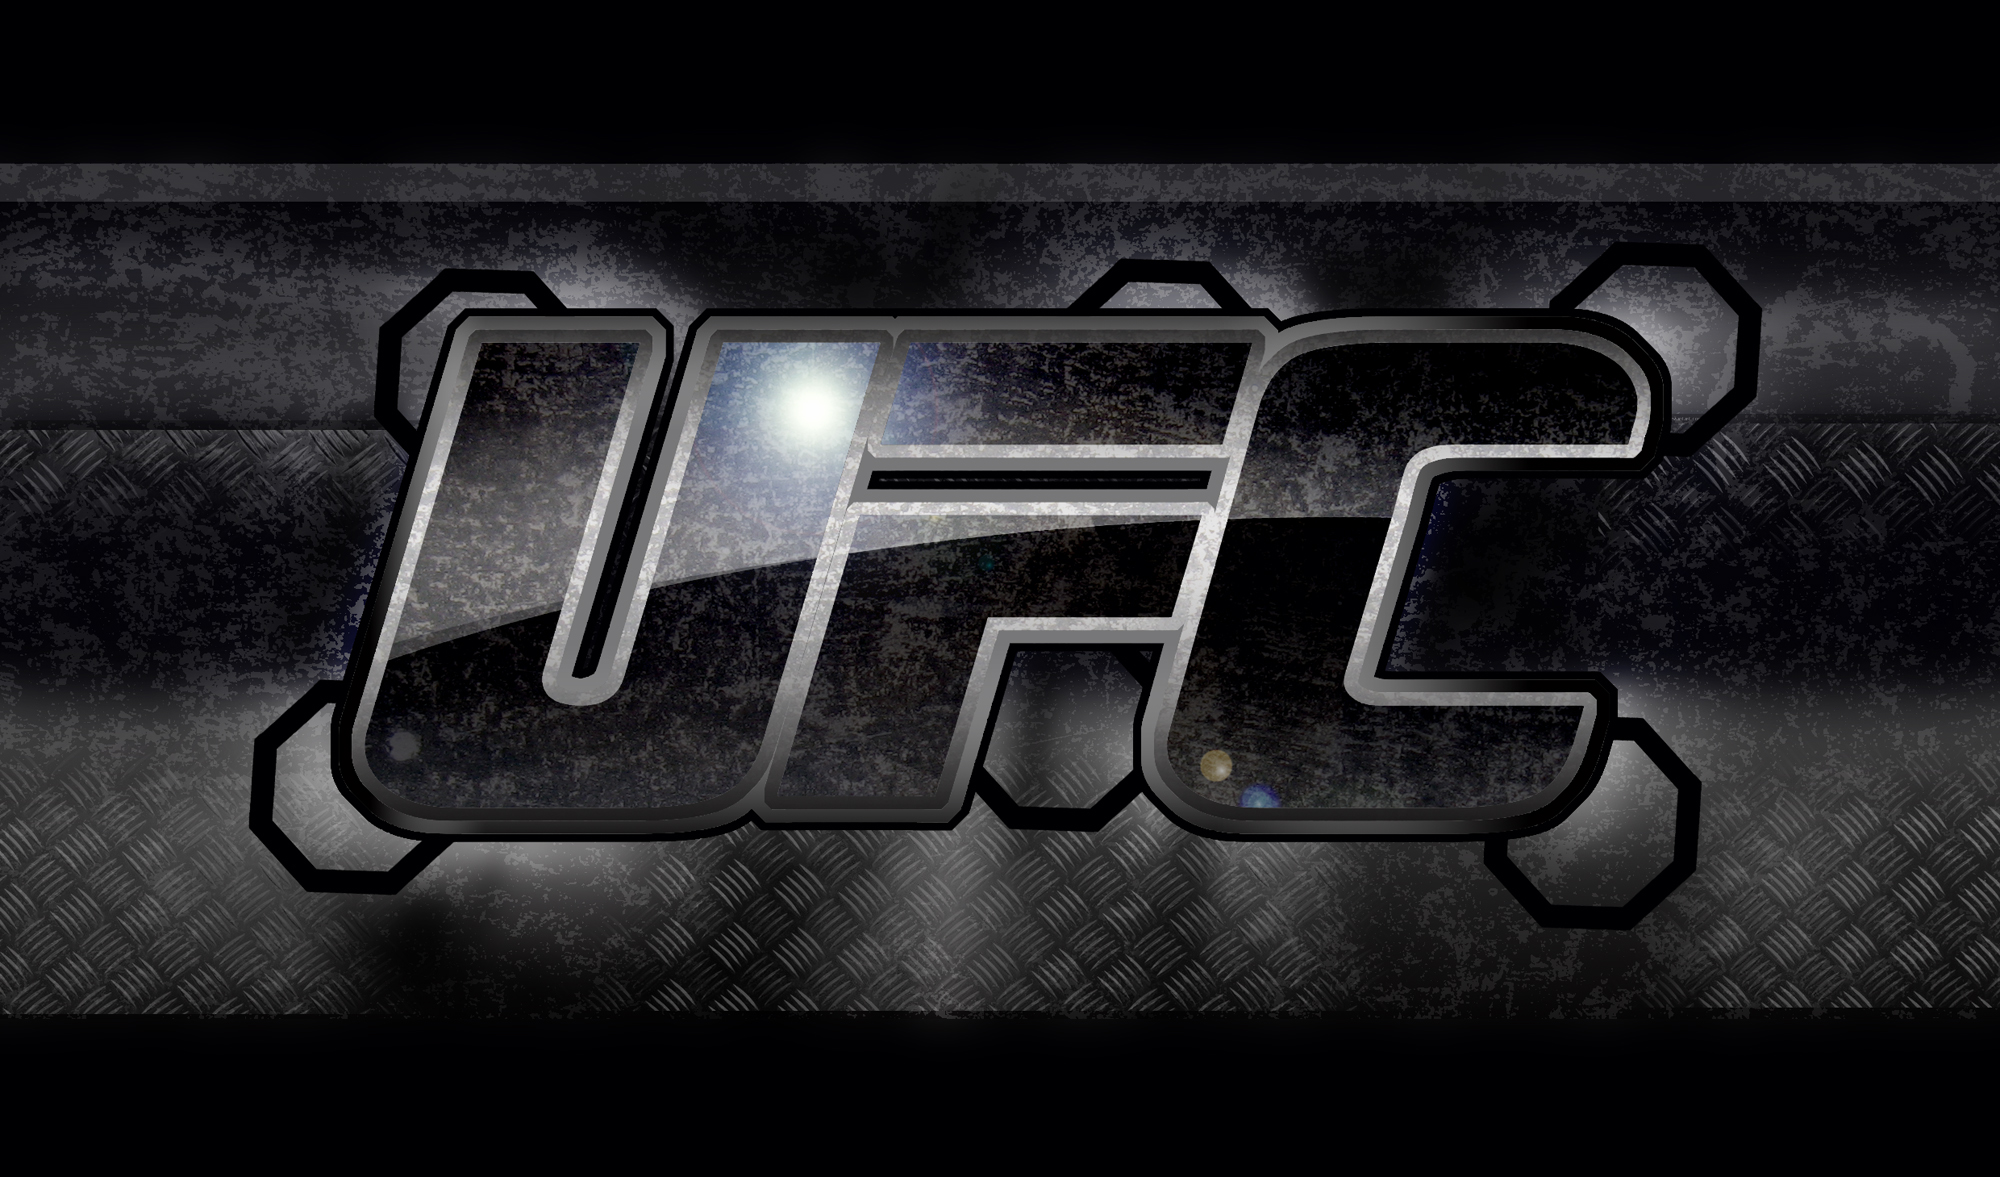 Ufc Wallpaper Hd 17 ultimate fighting championship hd wallpapers 2000x1177